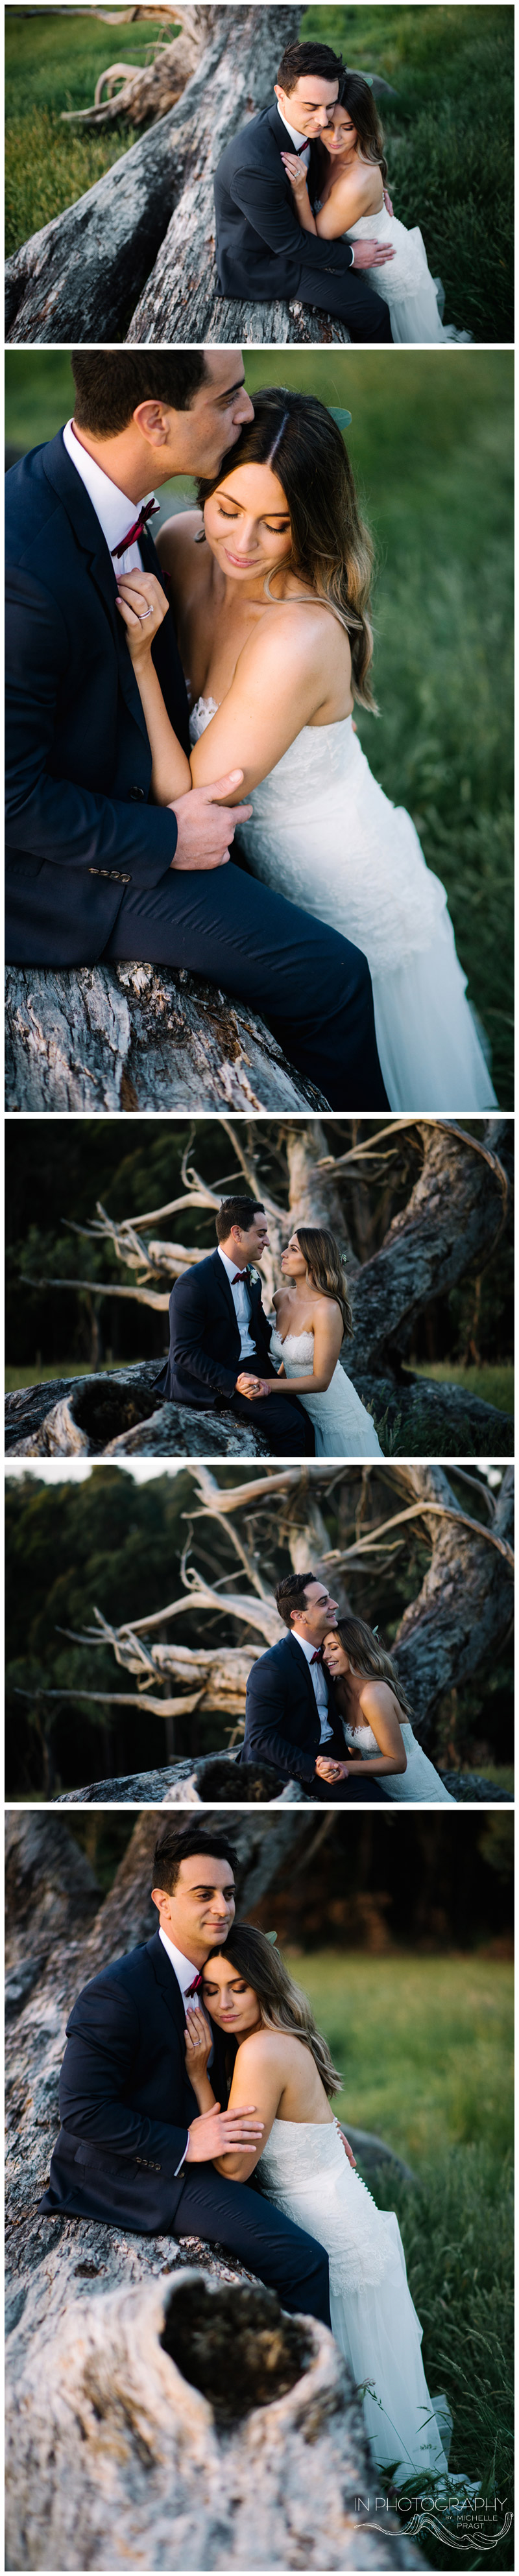 Mornington Peninsula wedding photographer Michelle Pragt of In Photography